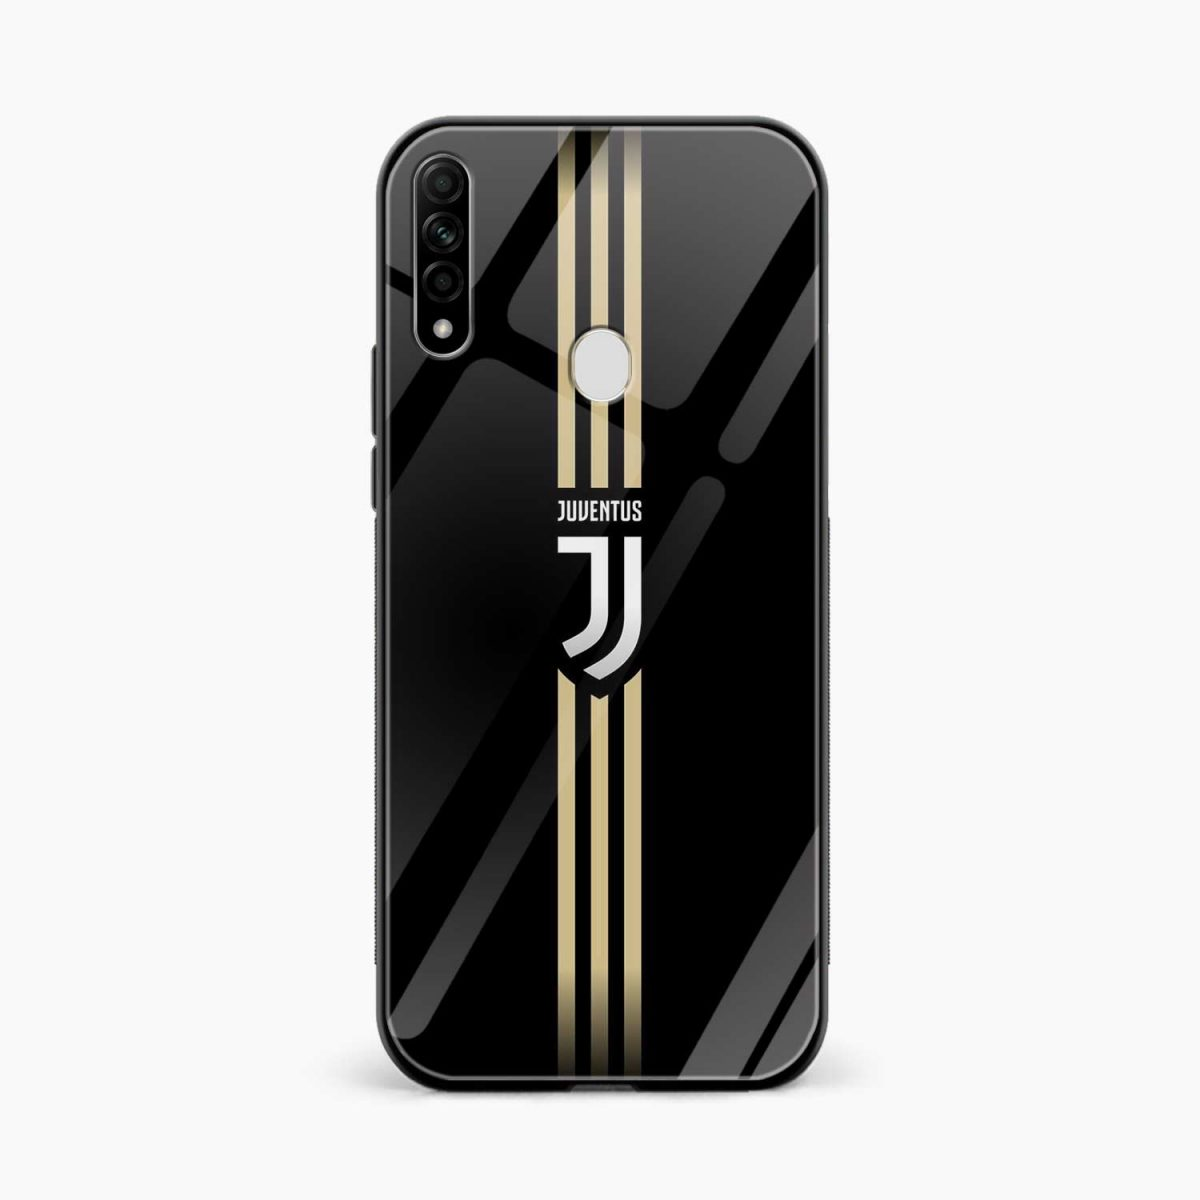 juventus golden strips front view oppo a31 back cover